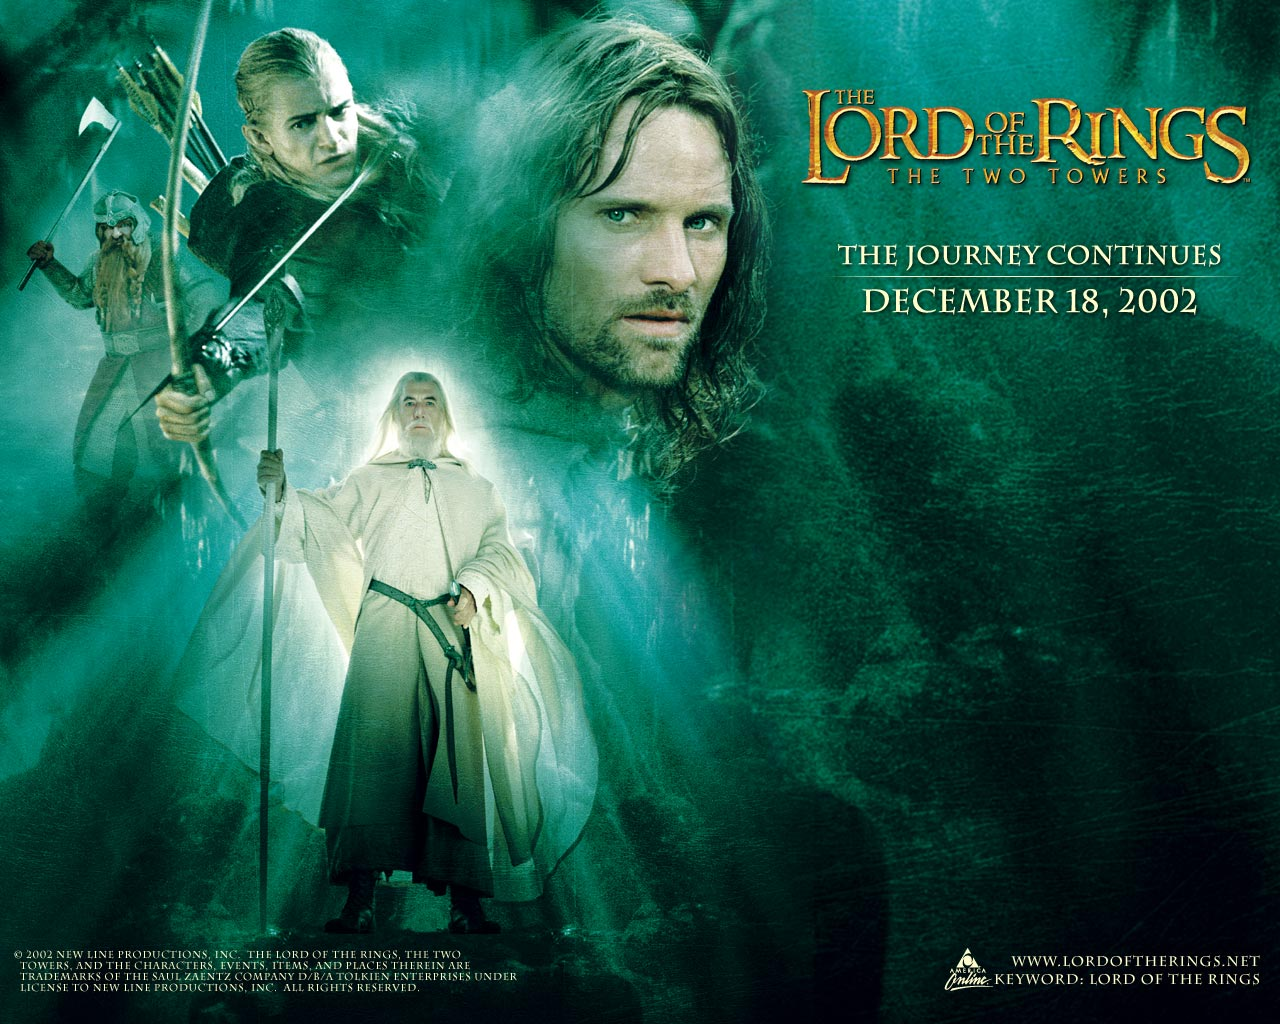 Foto's The Lord of the Rings The Lord of the Rings: The Two Towers Films film